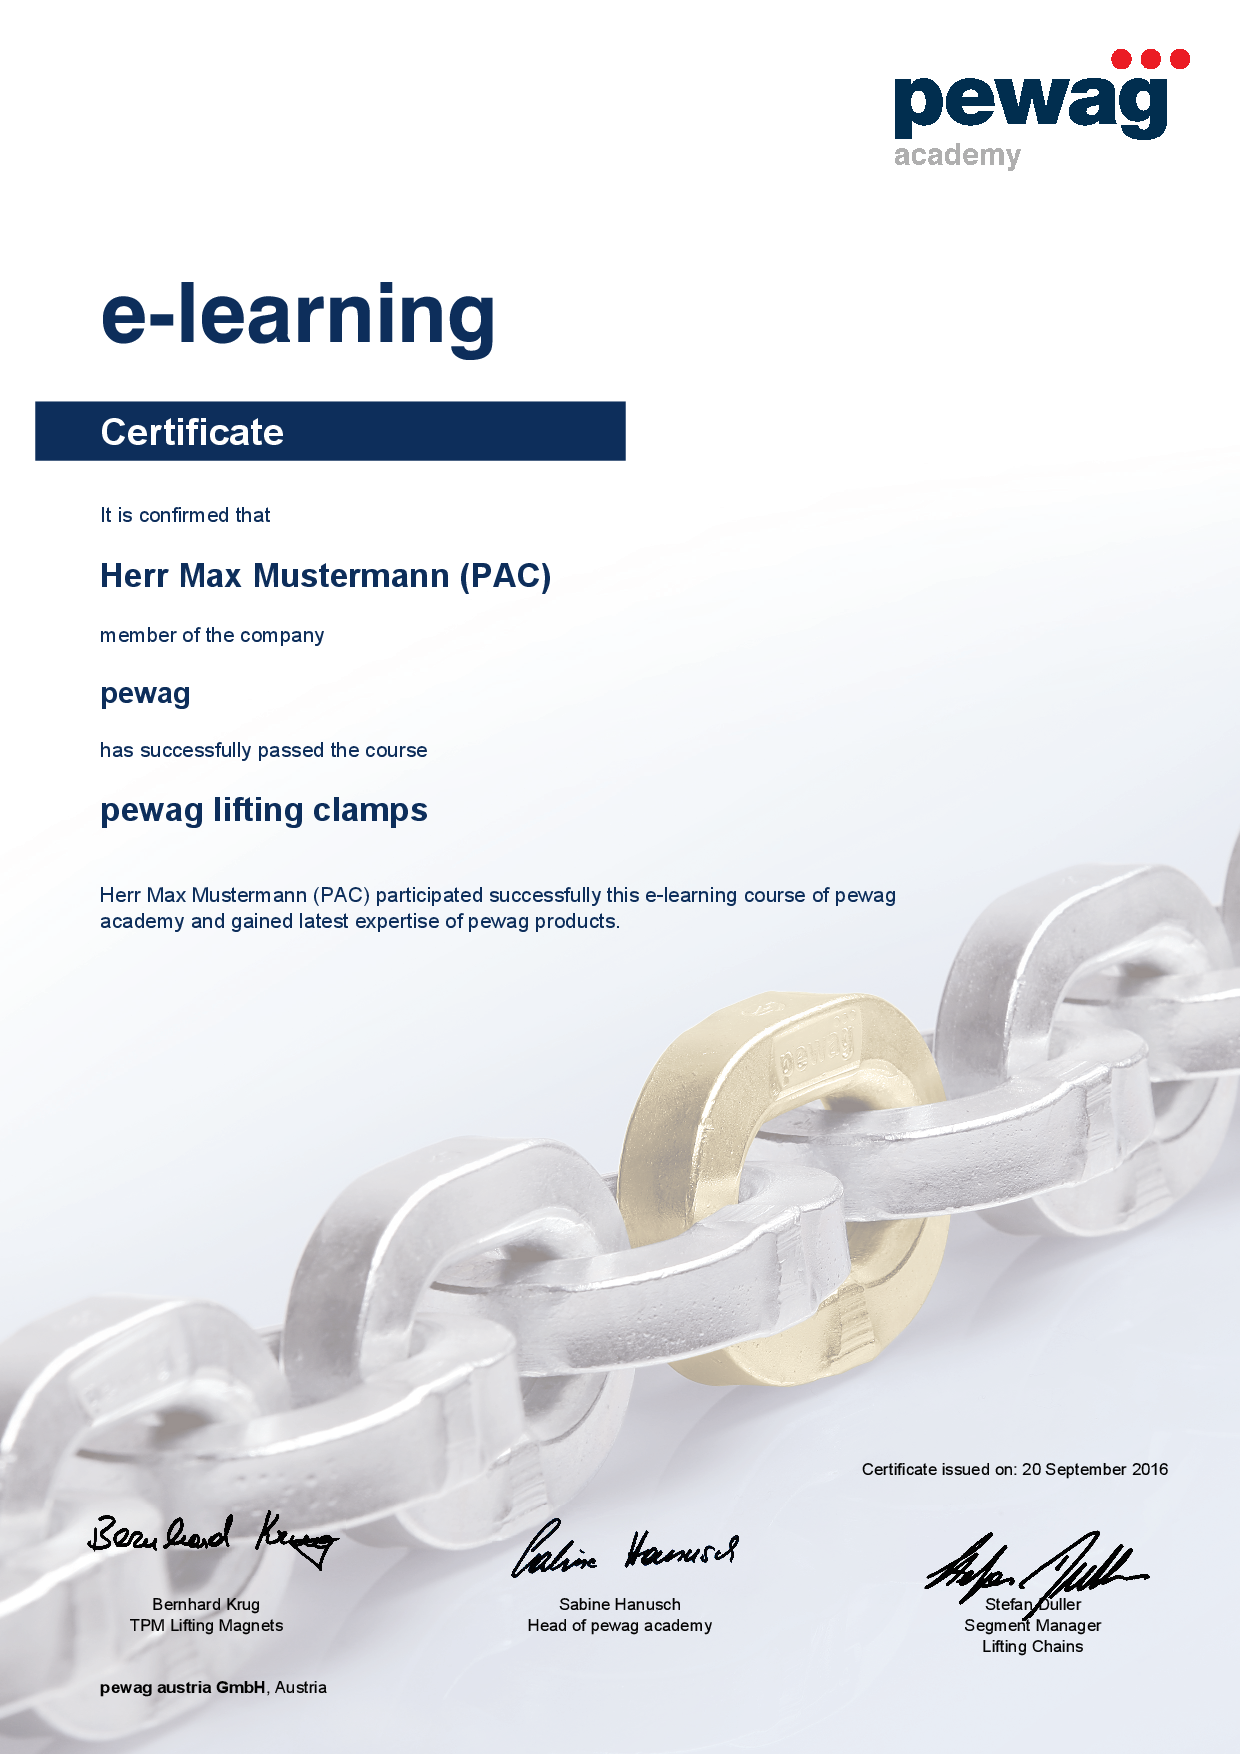 e-learning- pewag